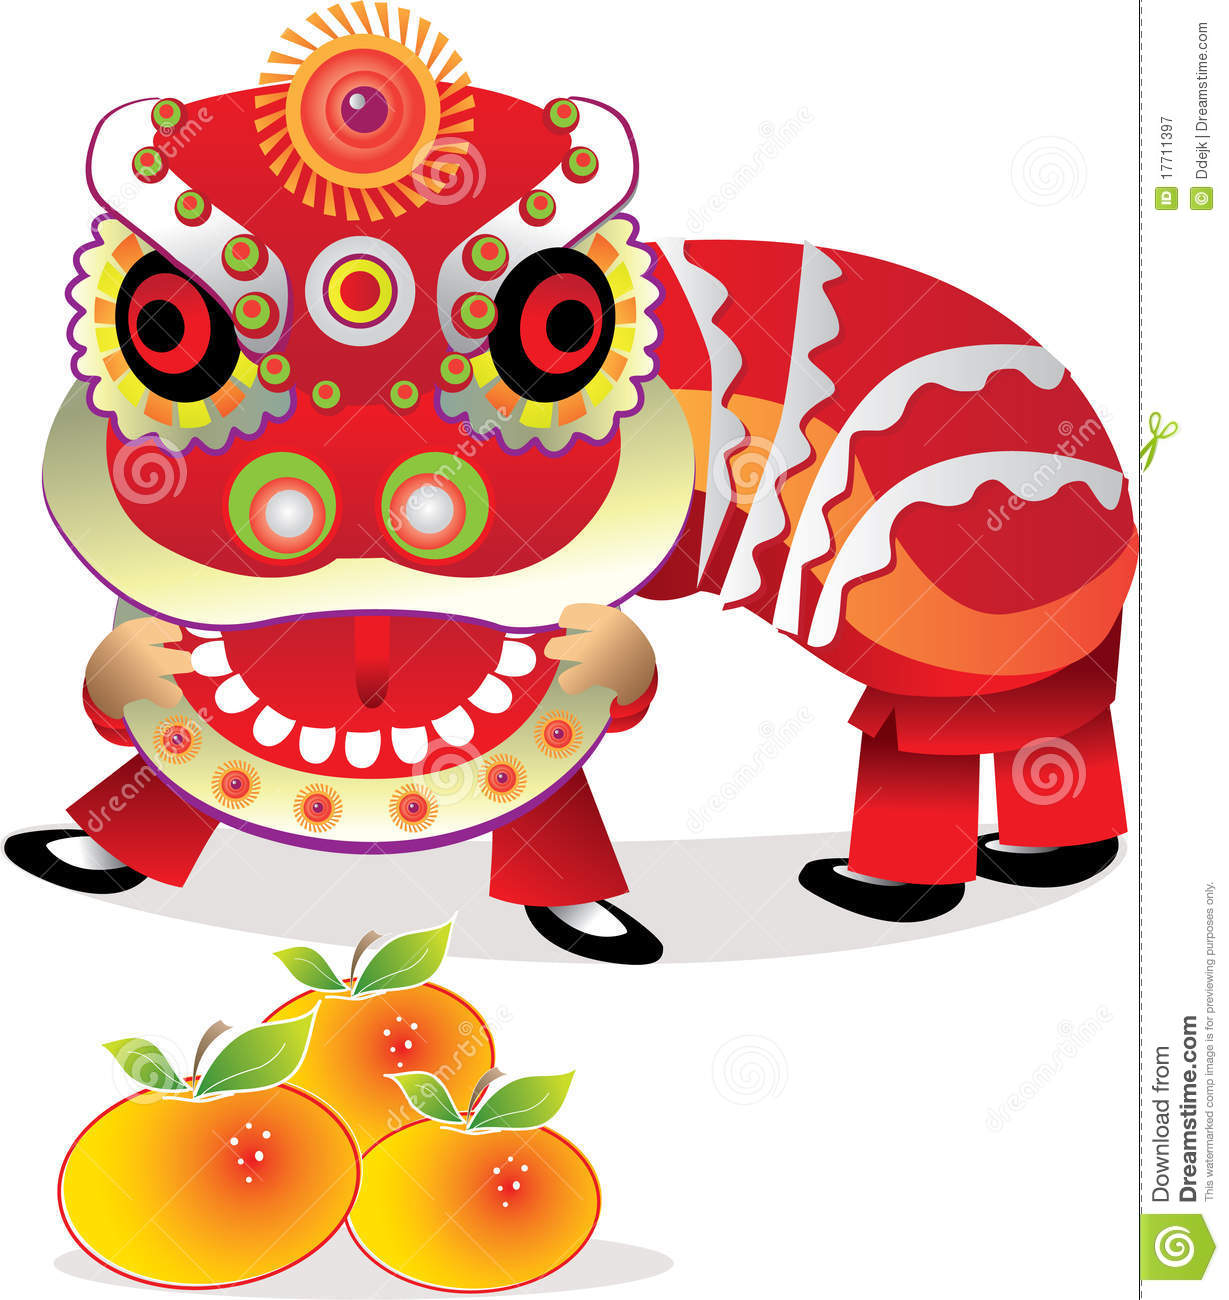 Lunar new year clipart #17